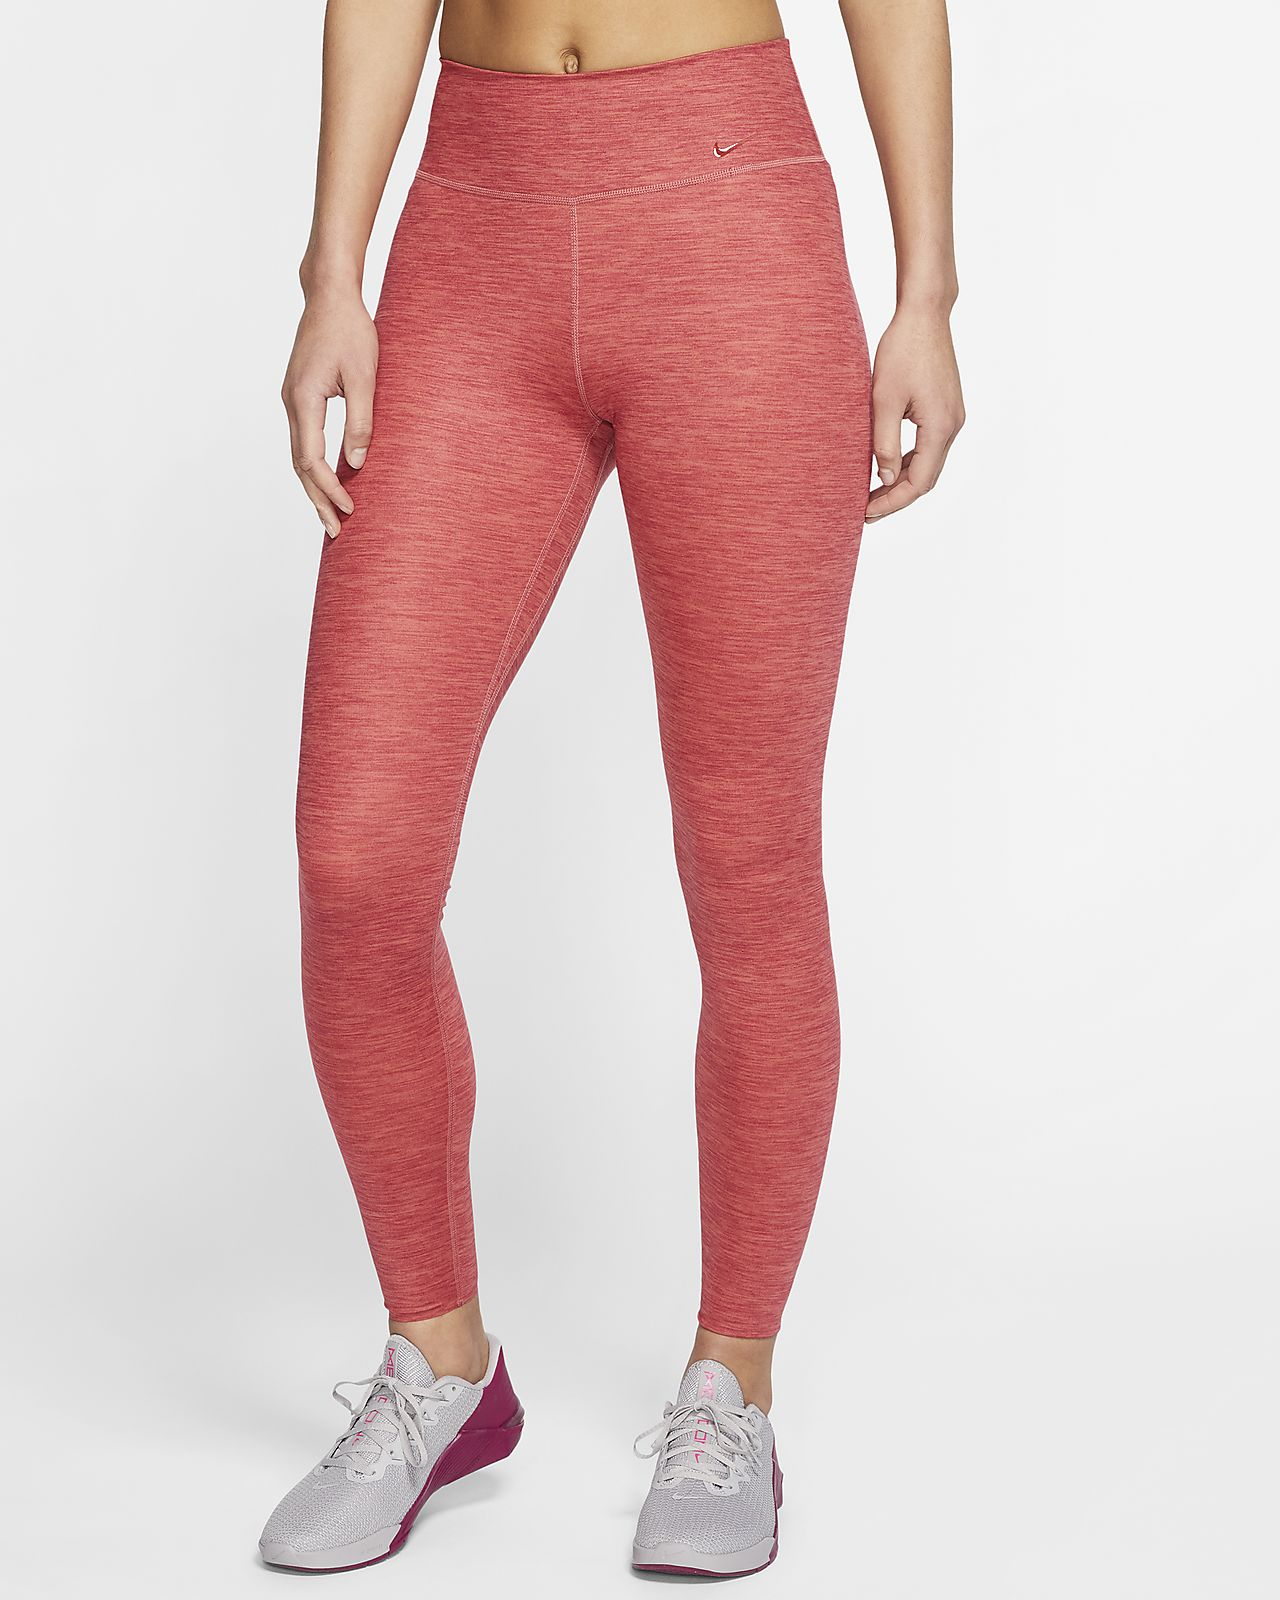 Nike One Luxe Women's Heathered Mid-Rise Tights